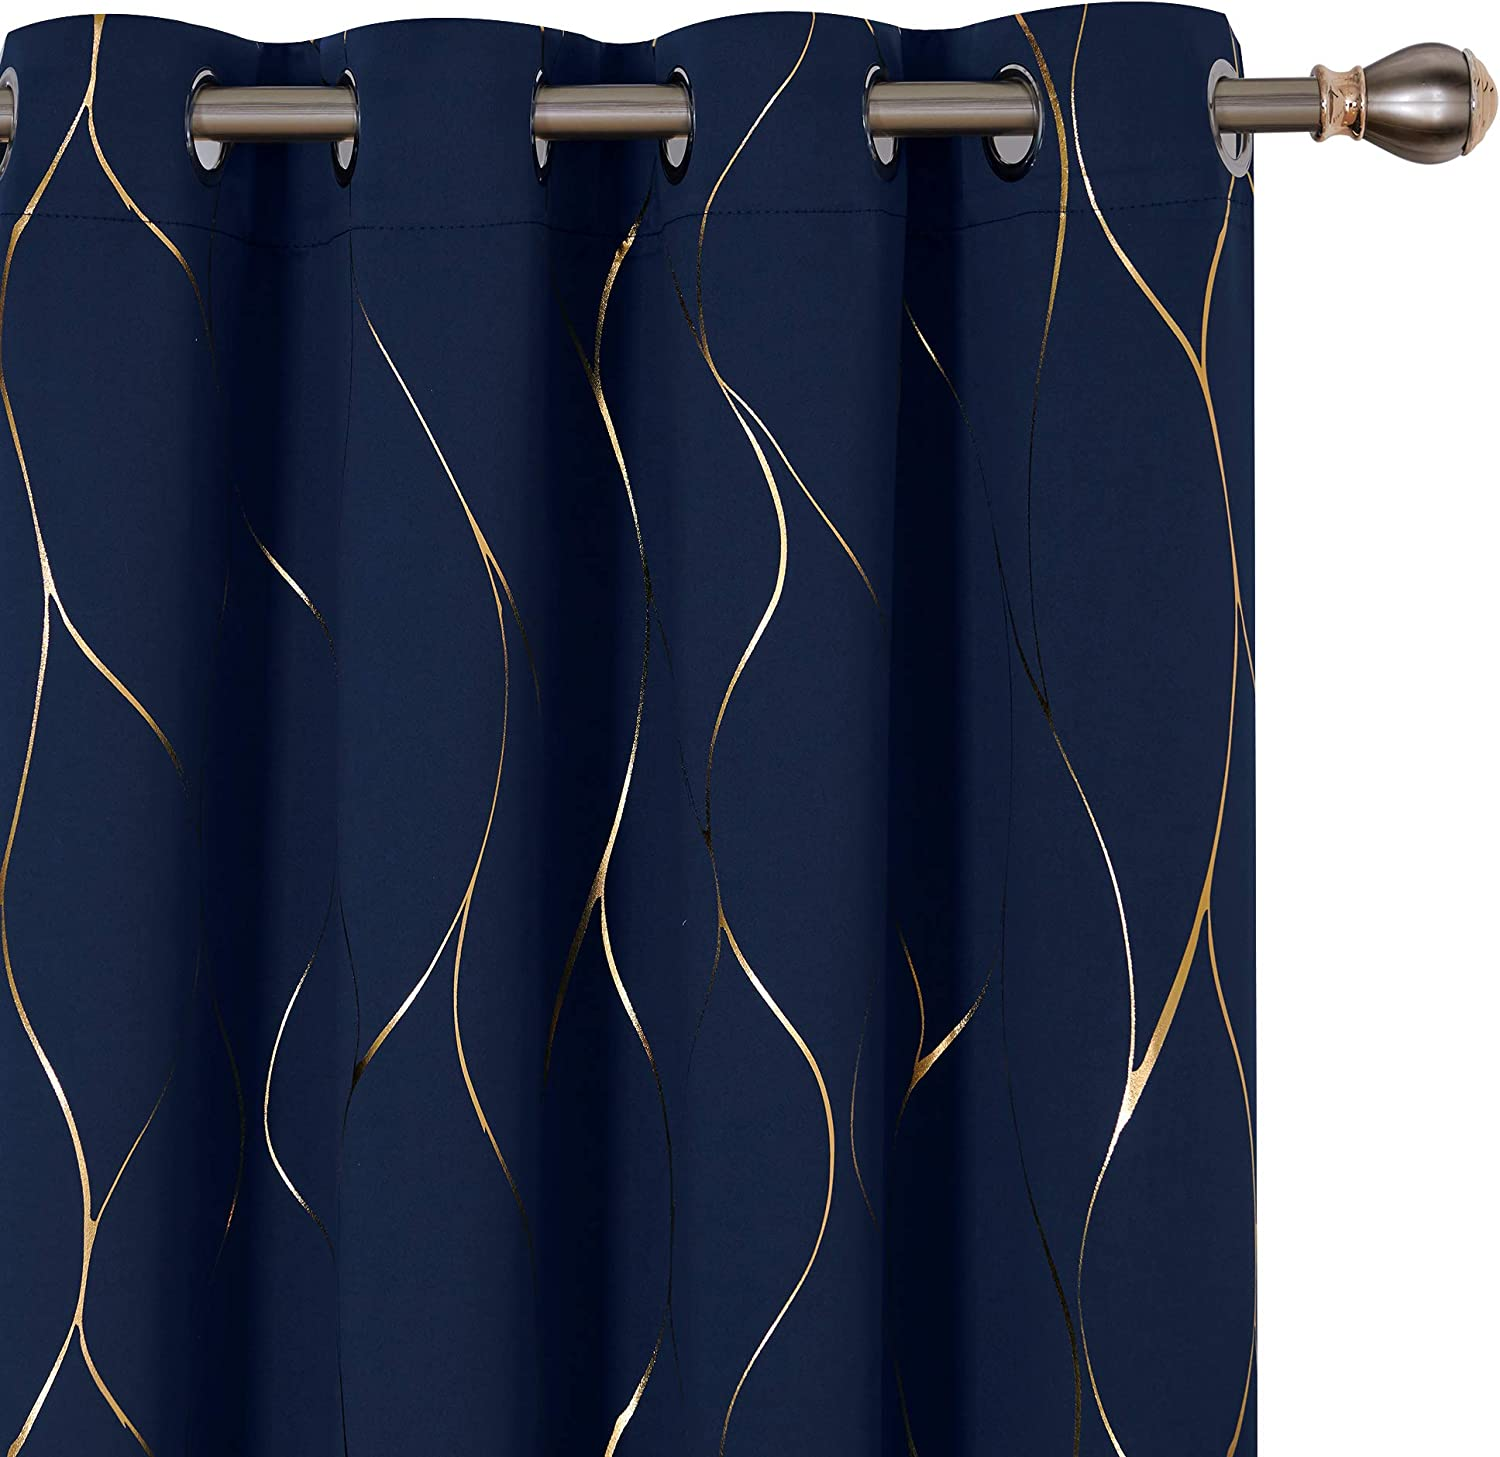 Deconovo Gold Wave Printed Blackout Curtains Thermal Insulated Grommet Panel Room Darkening Drapes for Small Window 42W x 45L Inch 2 Panels Black